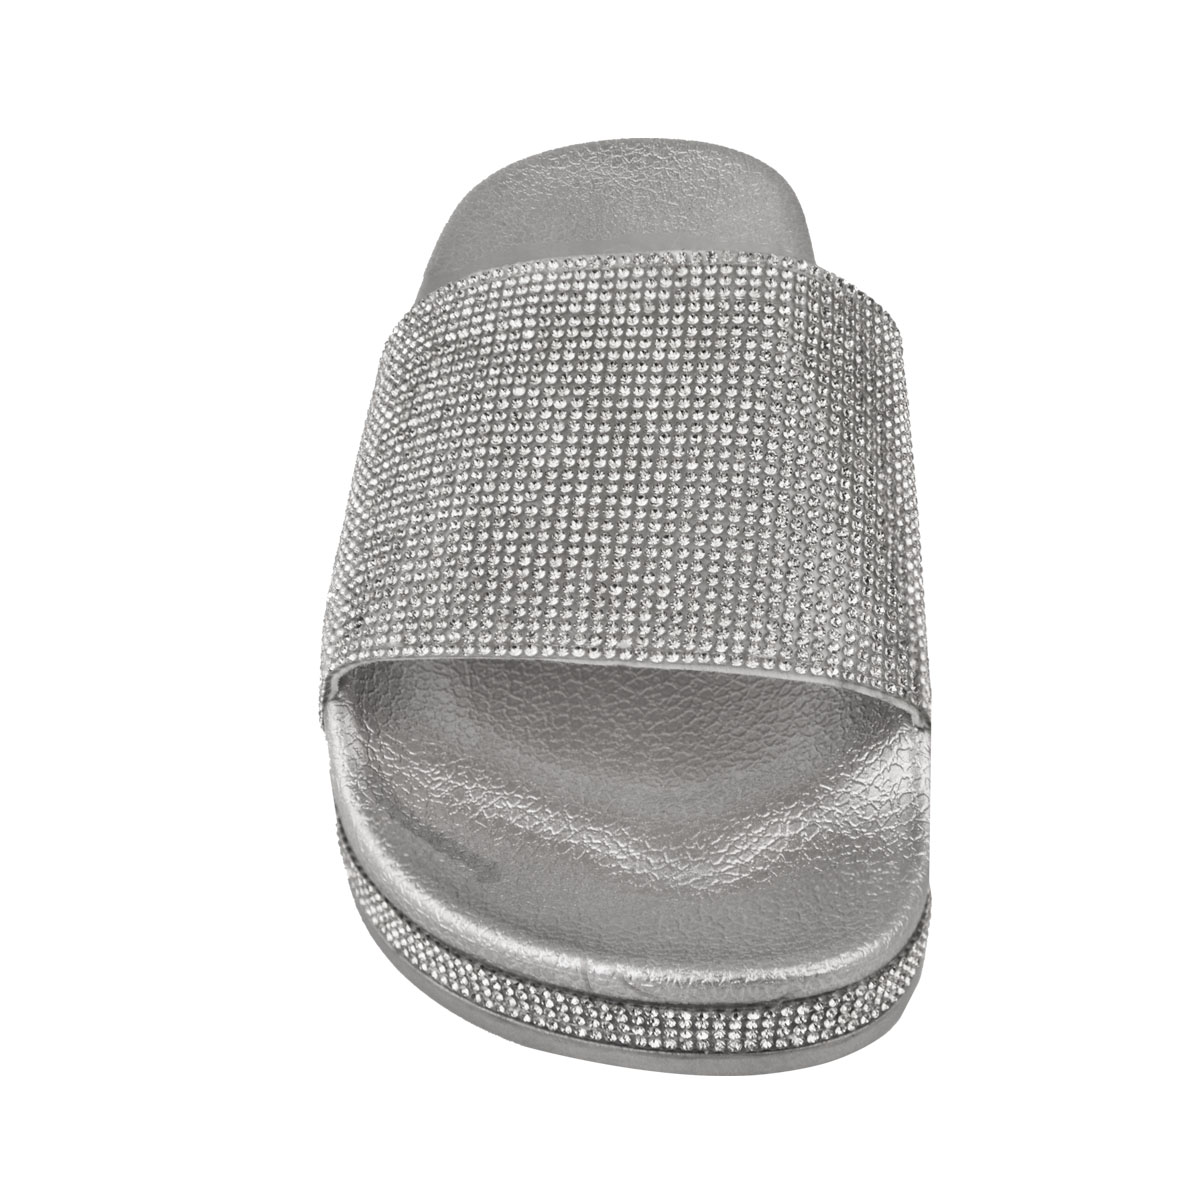 Womens-Ladies-Flat-Slides-Sandals-Diamante-Sparkly-Sliders-Slippers-Shoes-Size thumbnail 10